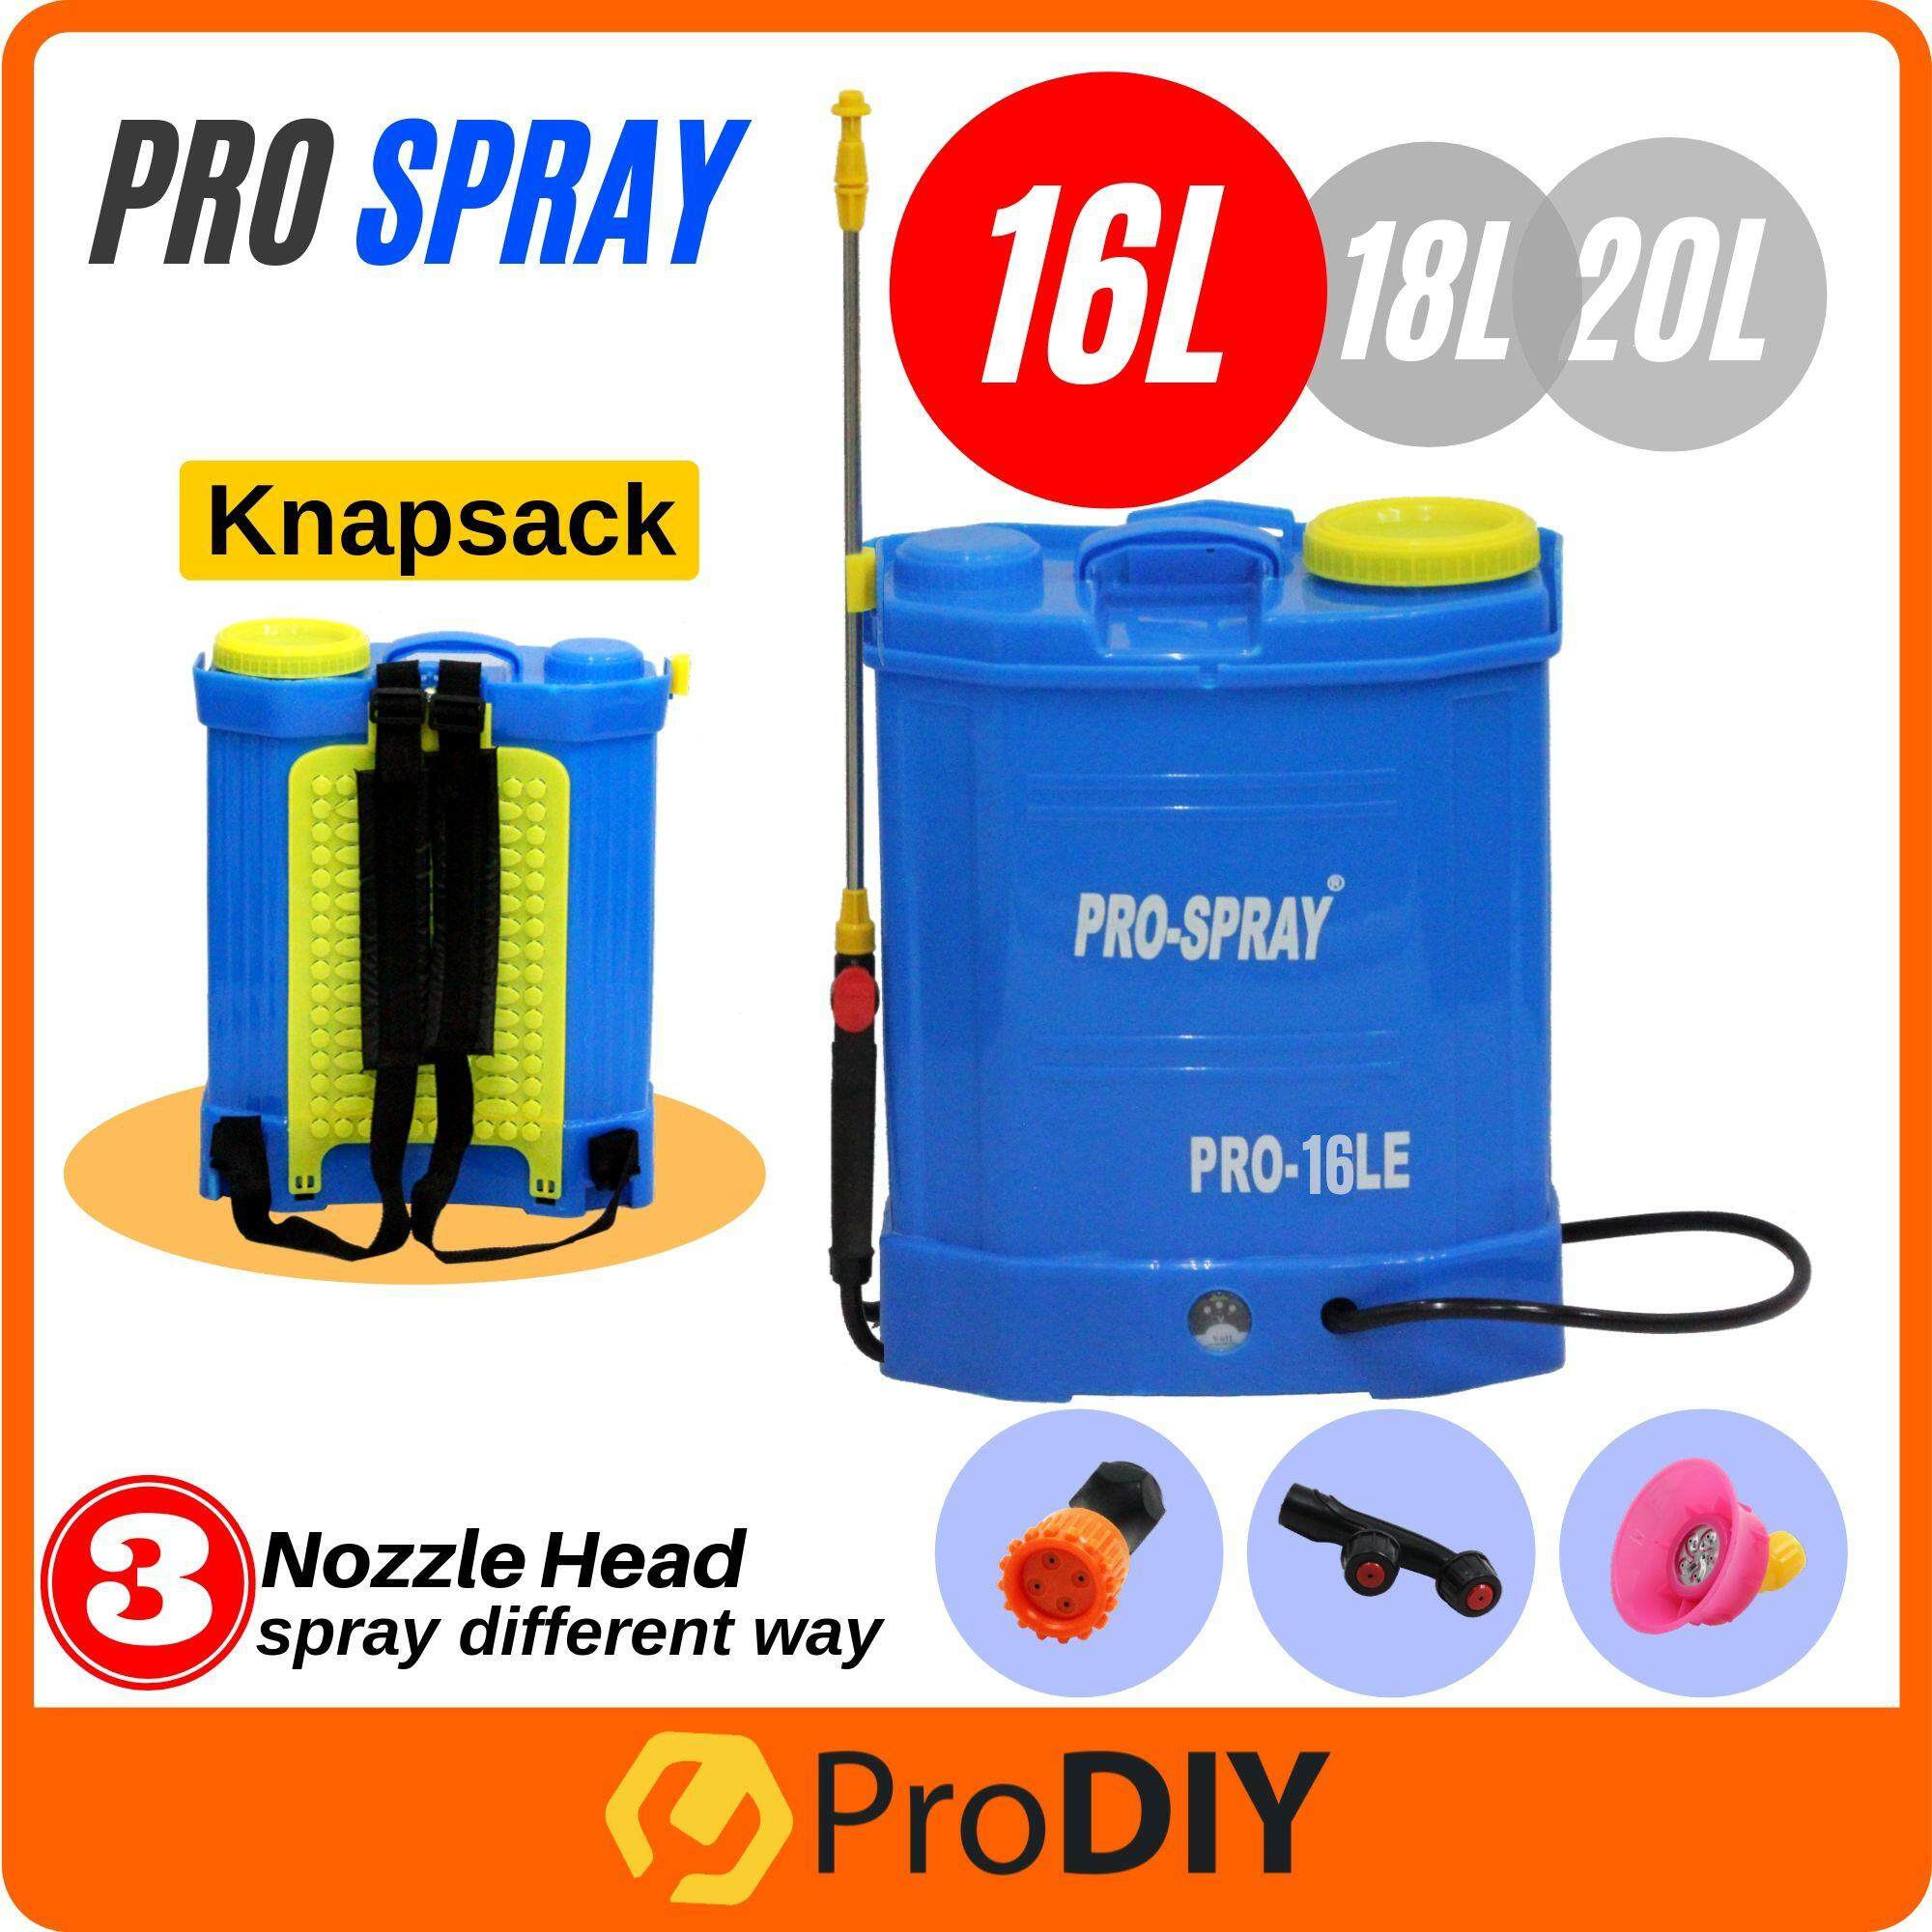 PRO-SPRAY Knapsack Chemical Sprayer Portable Rechargeable Battery Pam Racun 16L / 18L / 20L